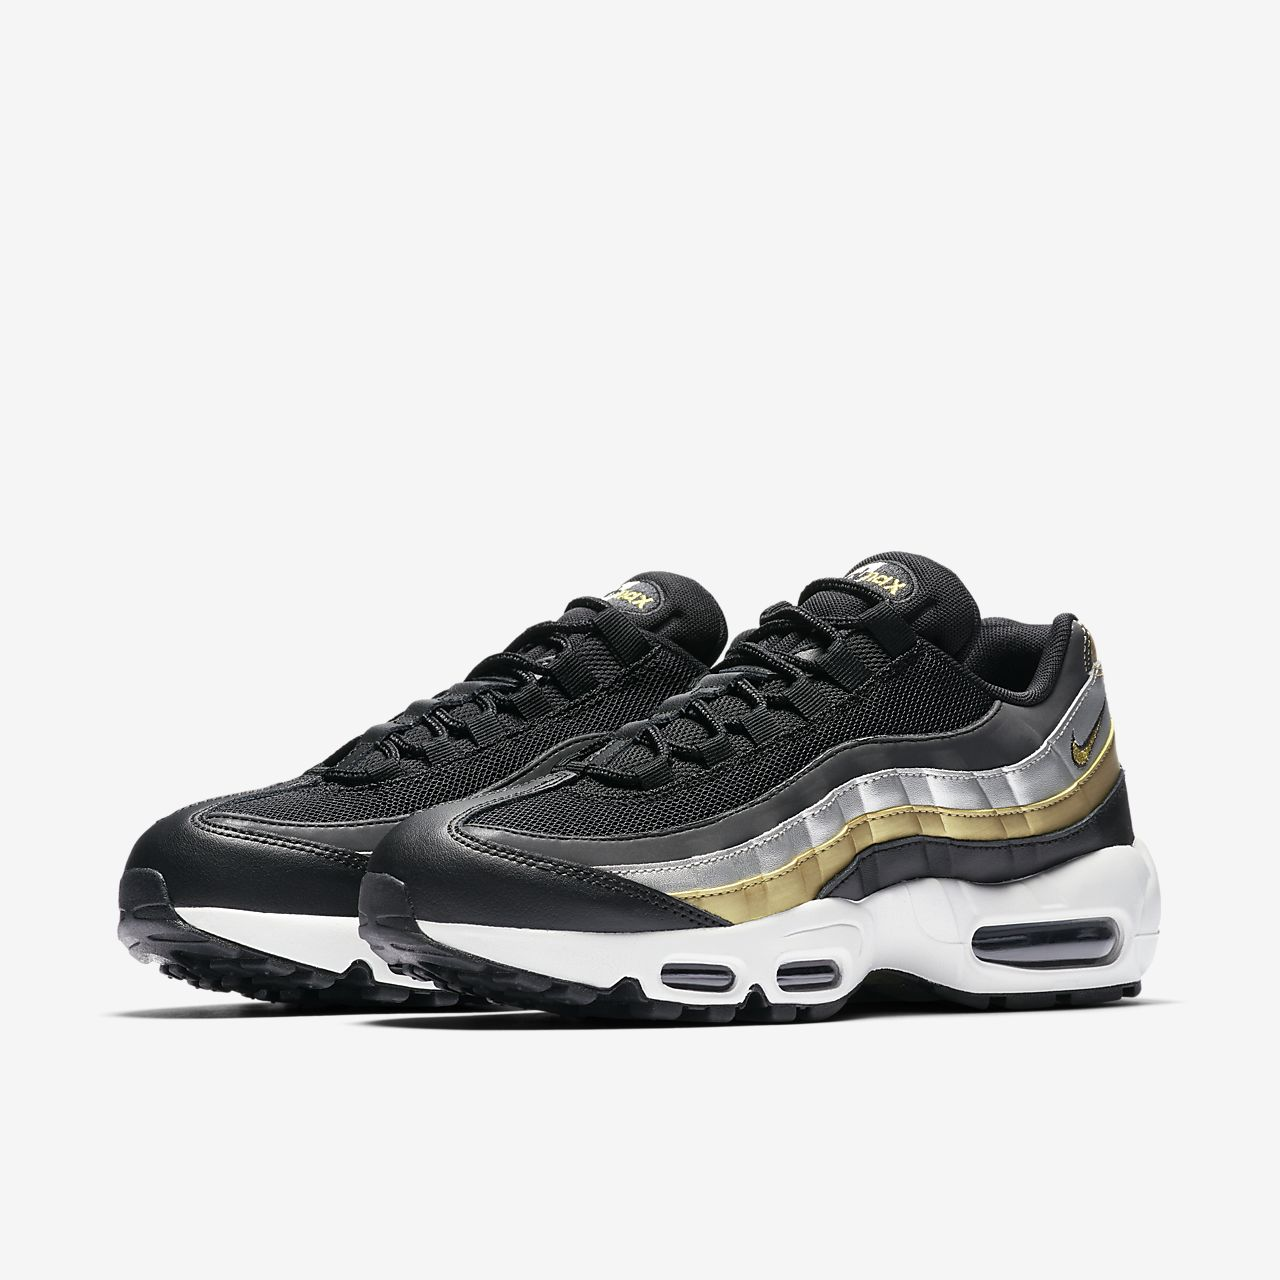 Nike Air Max 95 Lux Metallic Damesschoen